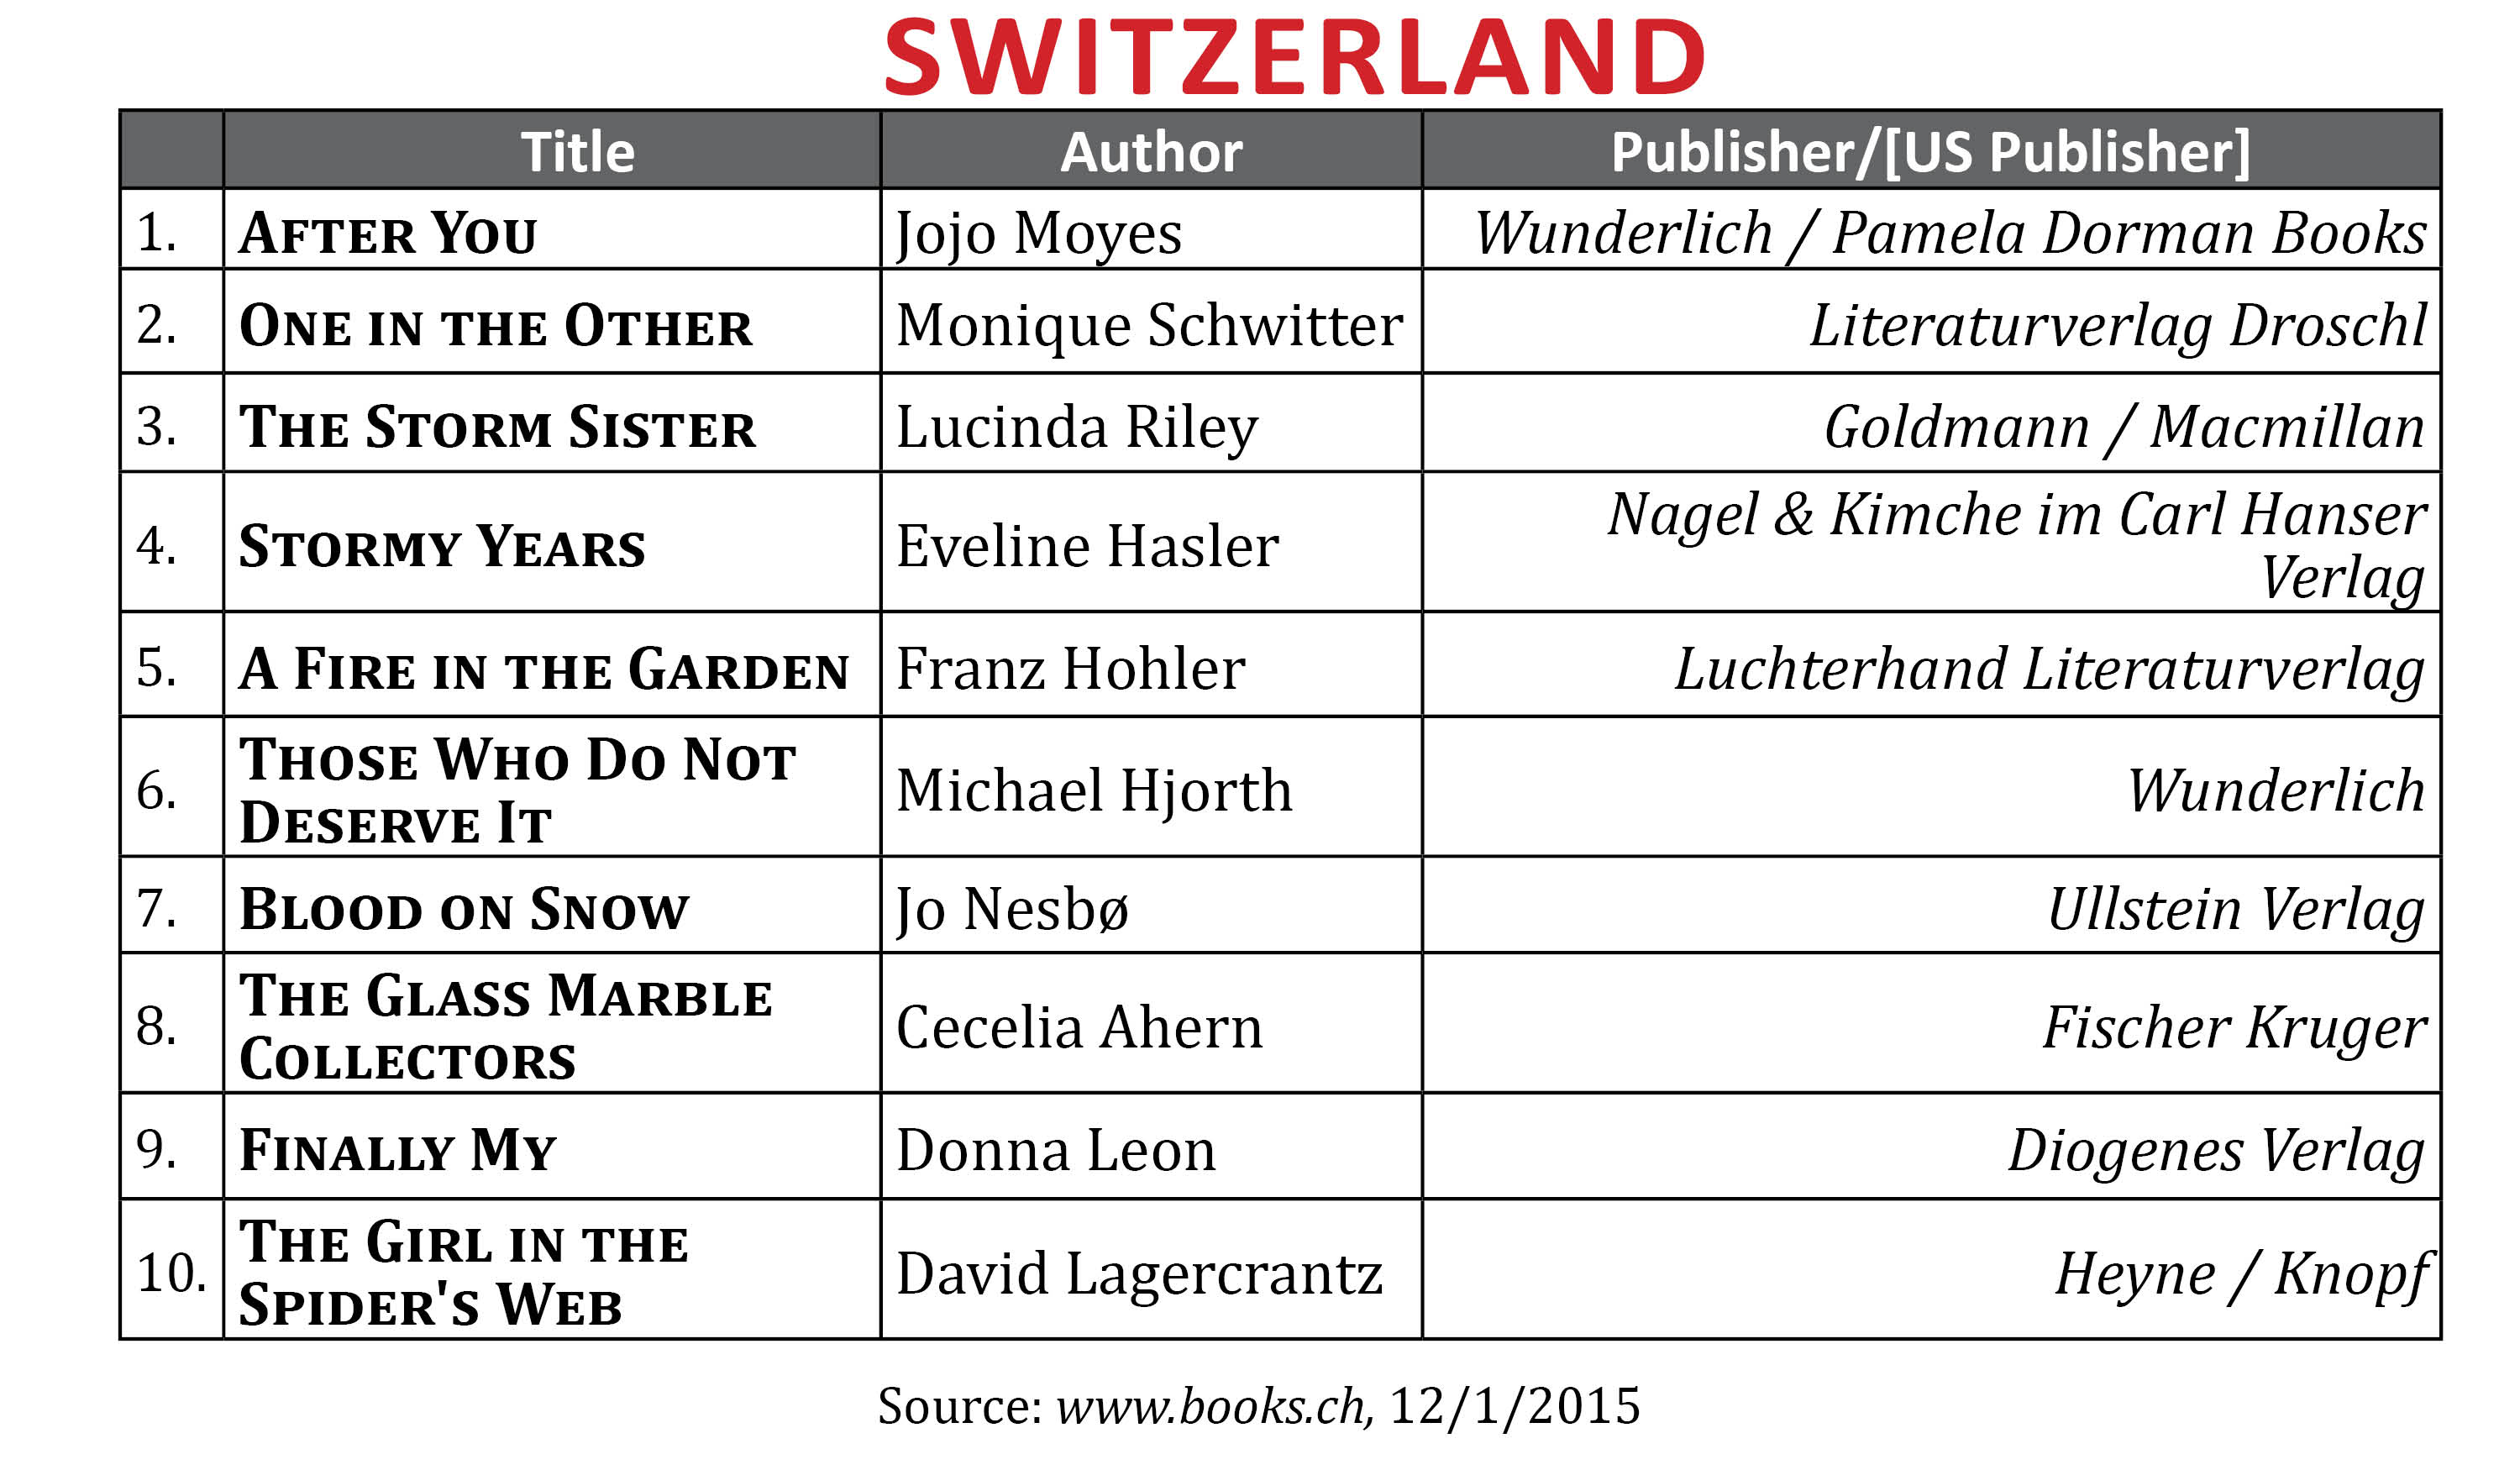 Bestsellernov2015switzerland